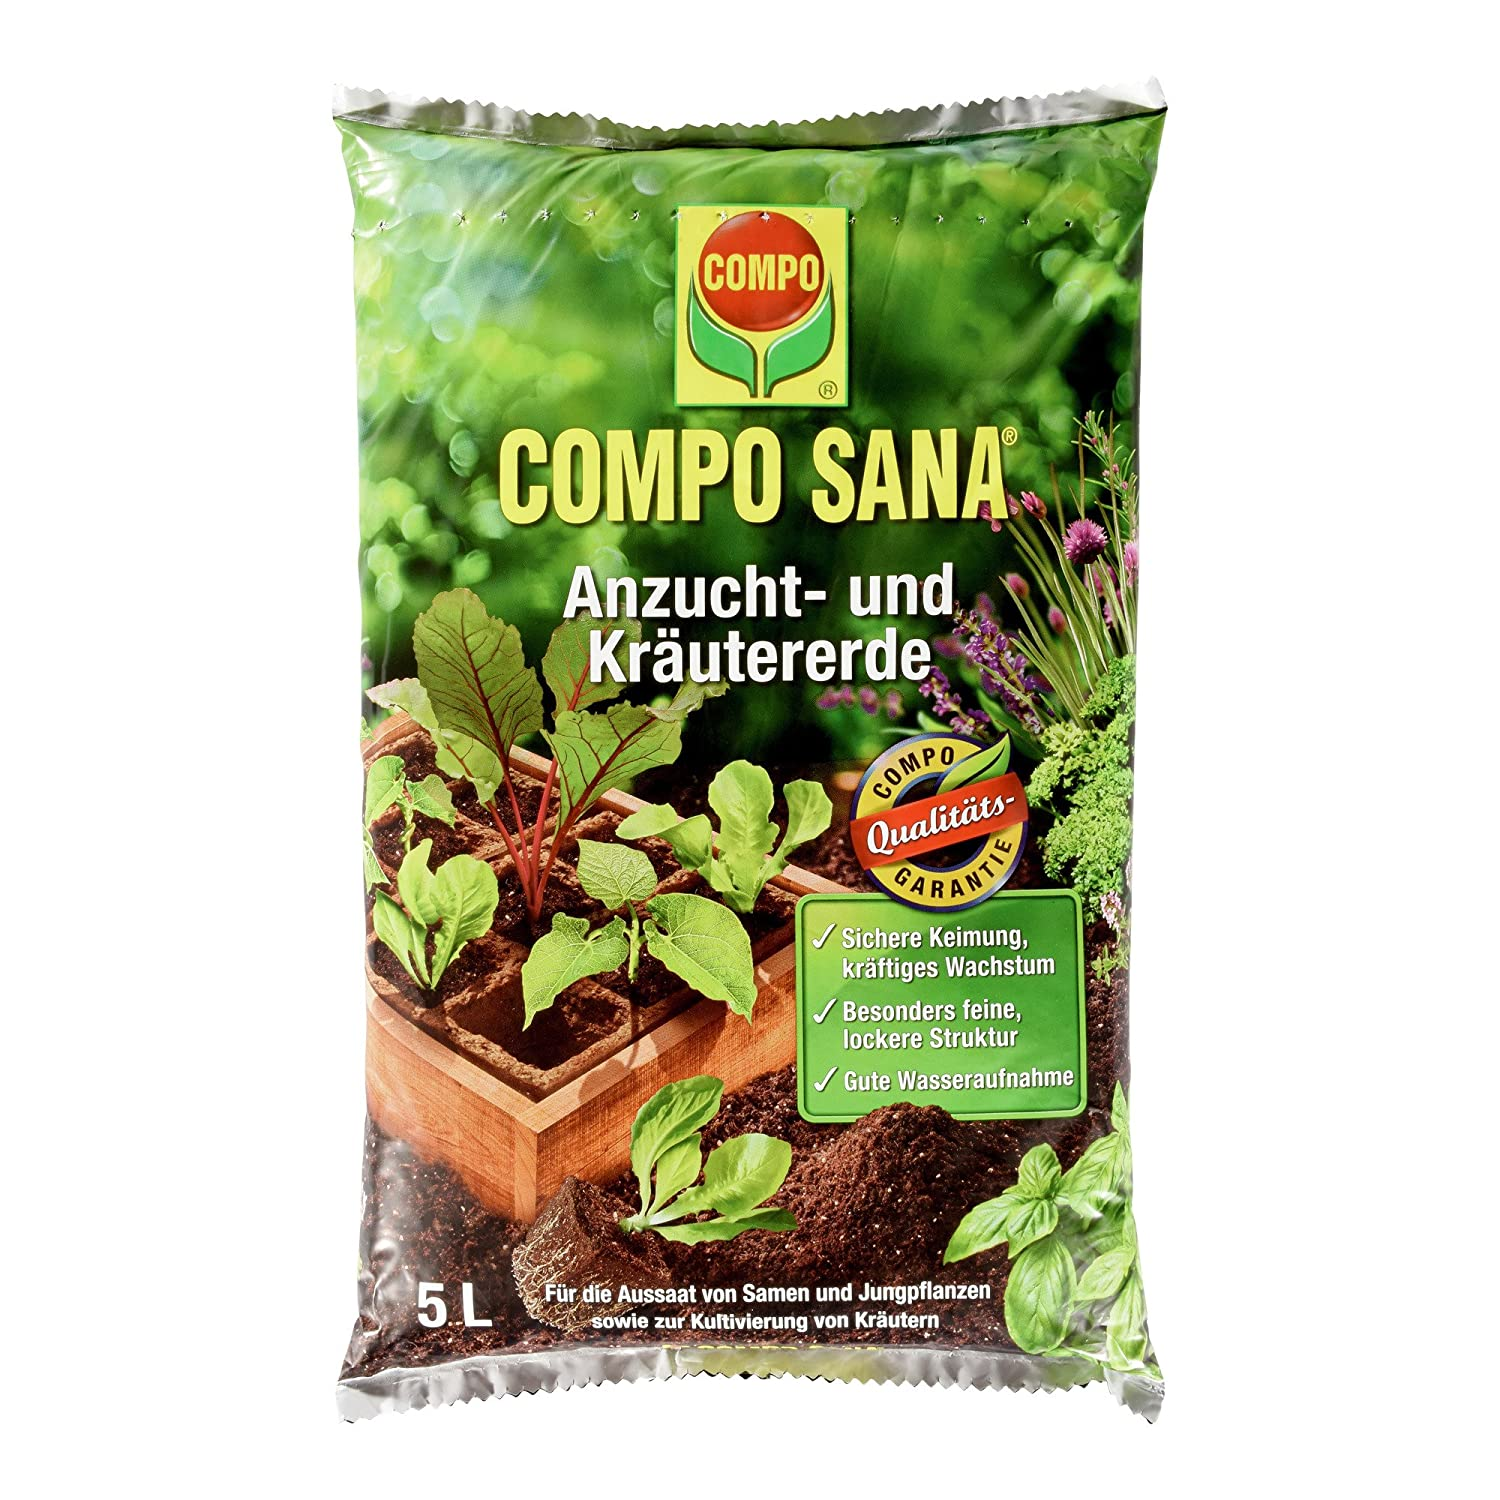 Compo Sana Cultivation and Herbal Soil, High Quality Earth For Glasshouse – Cuttings And Young Plants, 5 L 10620